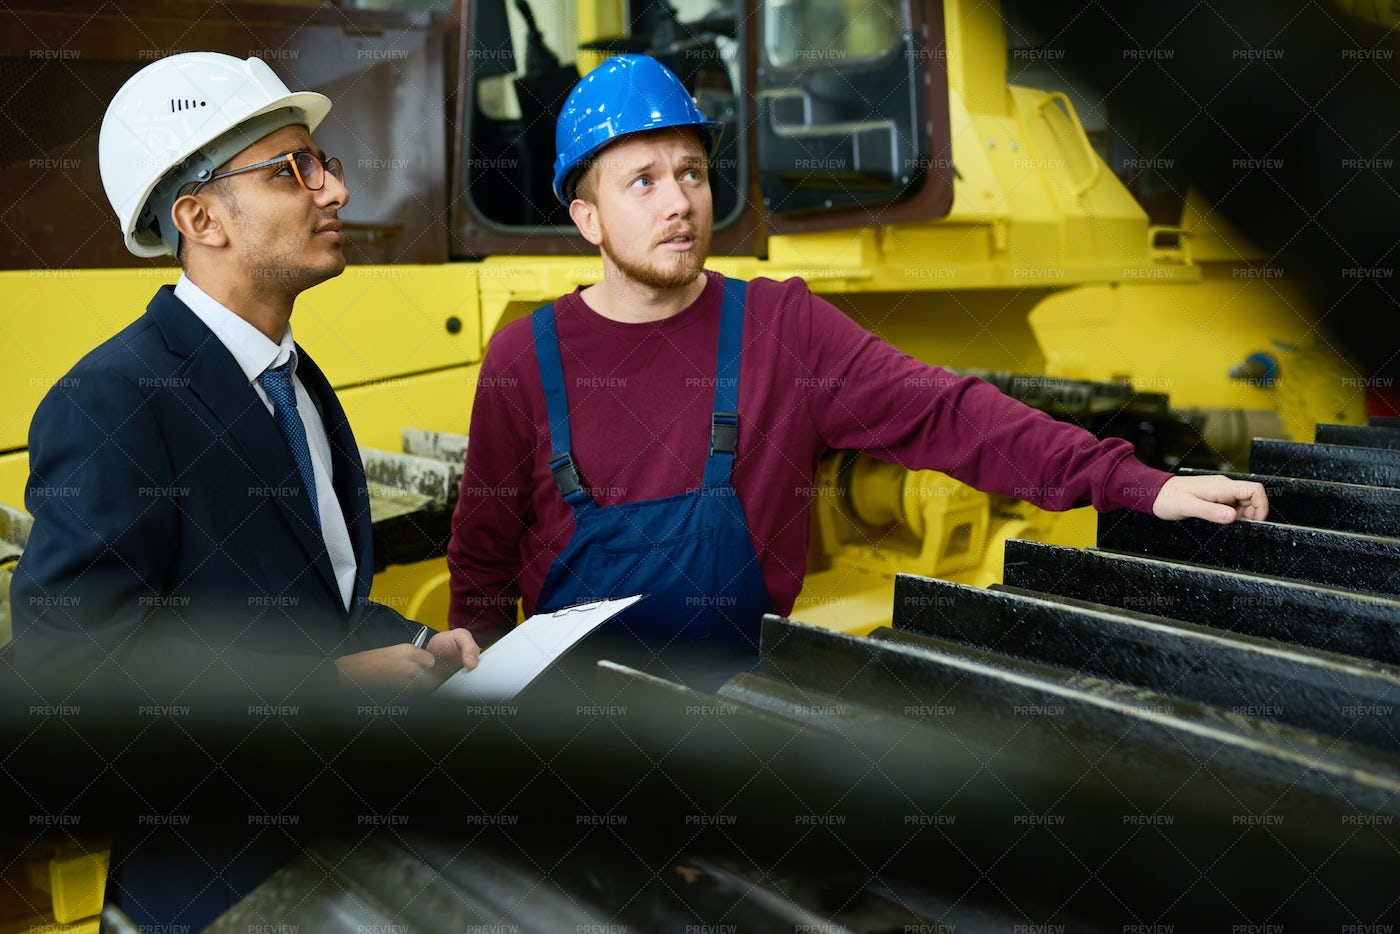 Giving Factory Tour To Potential...: Stock Photos